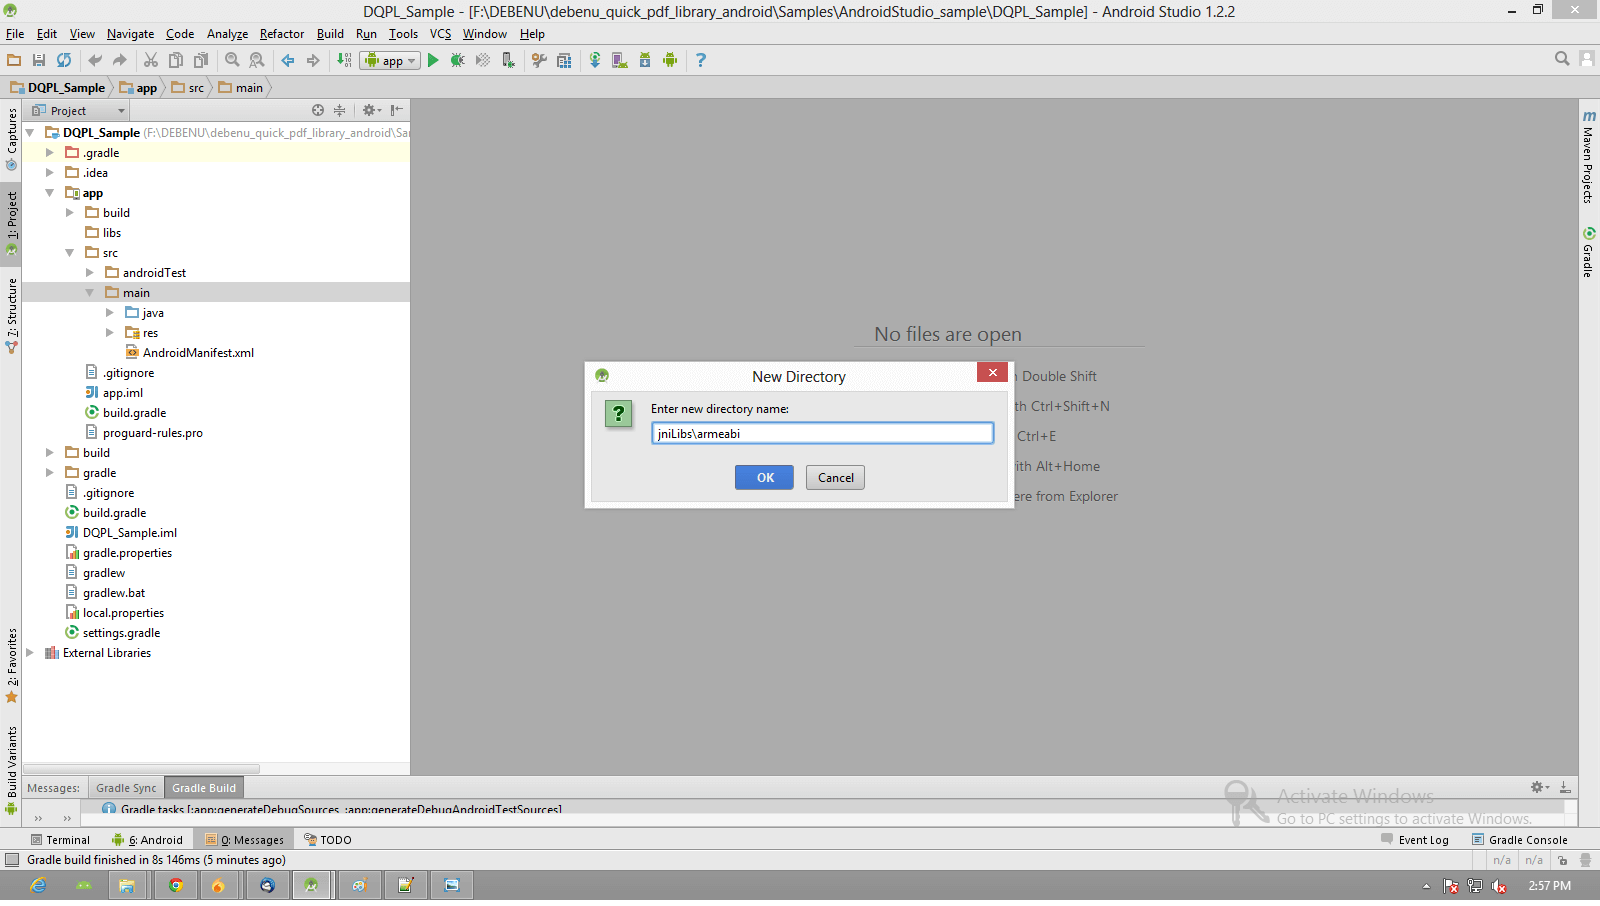 Setup Android Studio and Debenu Quick PDF Library - Foxit SDK